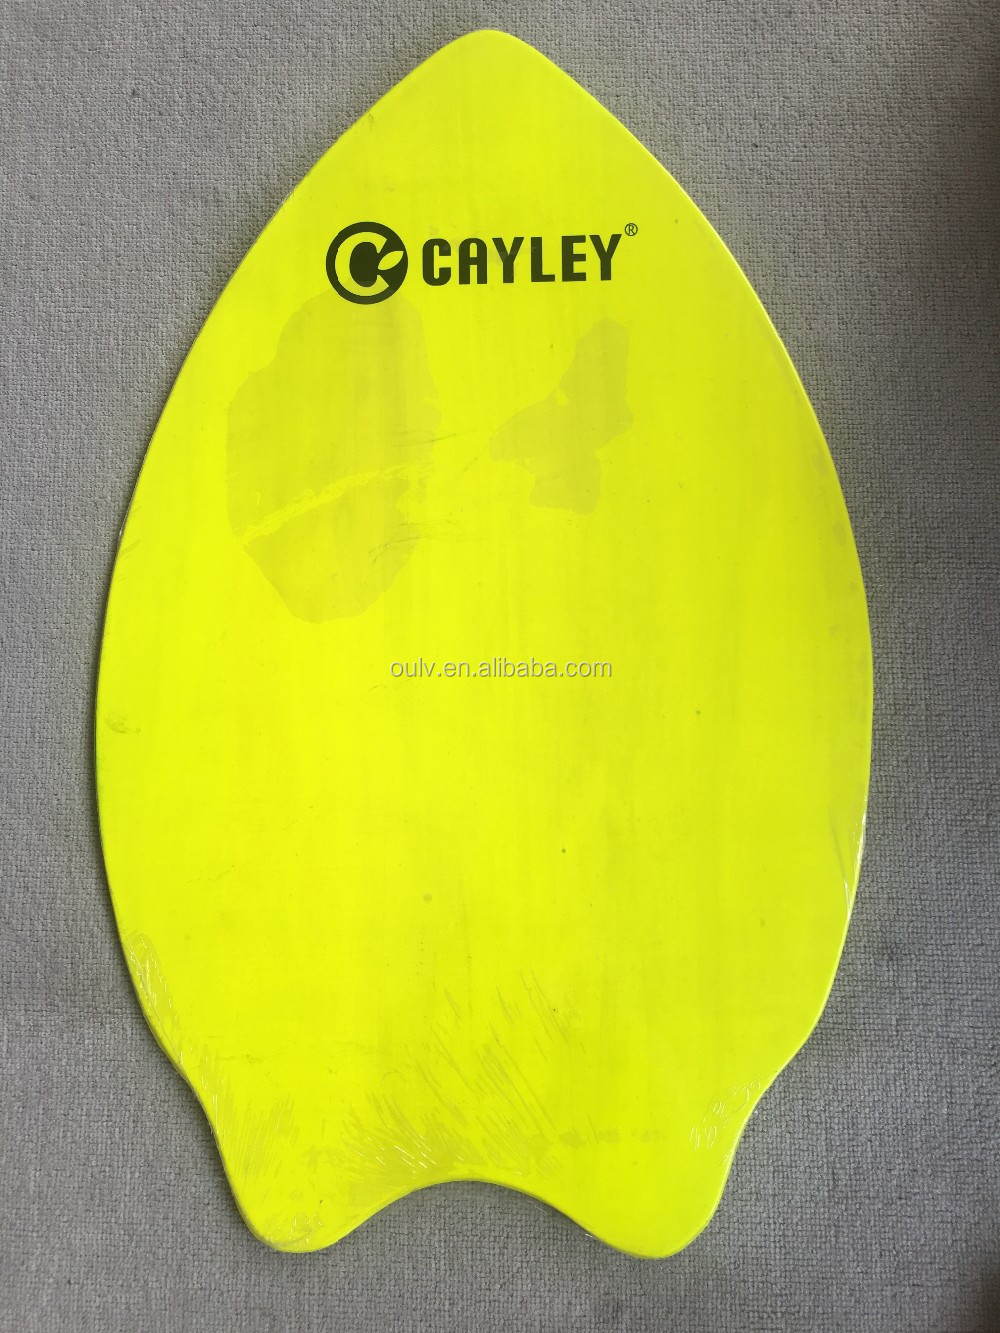 "37"".41"" Wood Skimboard EVA skim board and Traction Pad by cheap price in good quality"